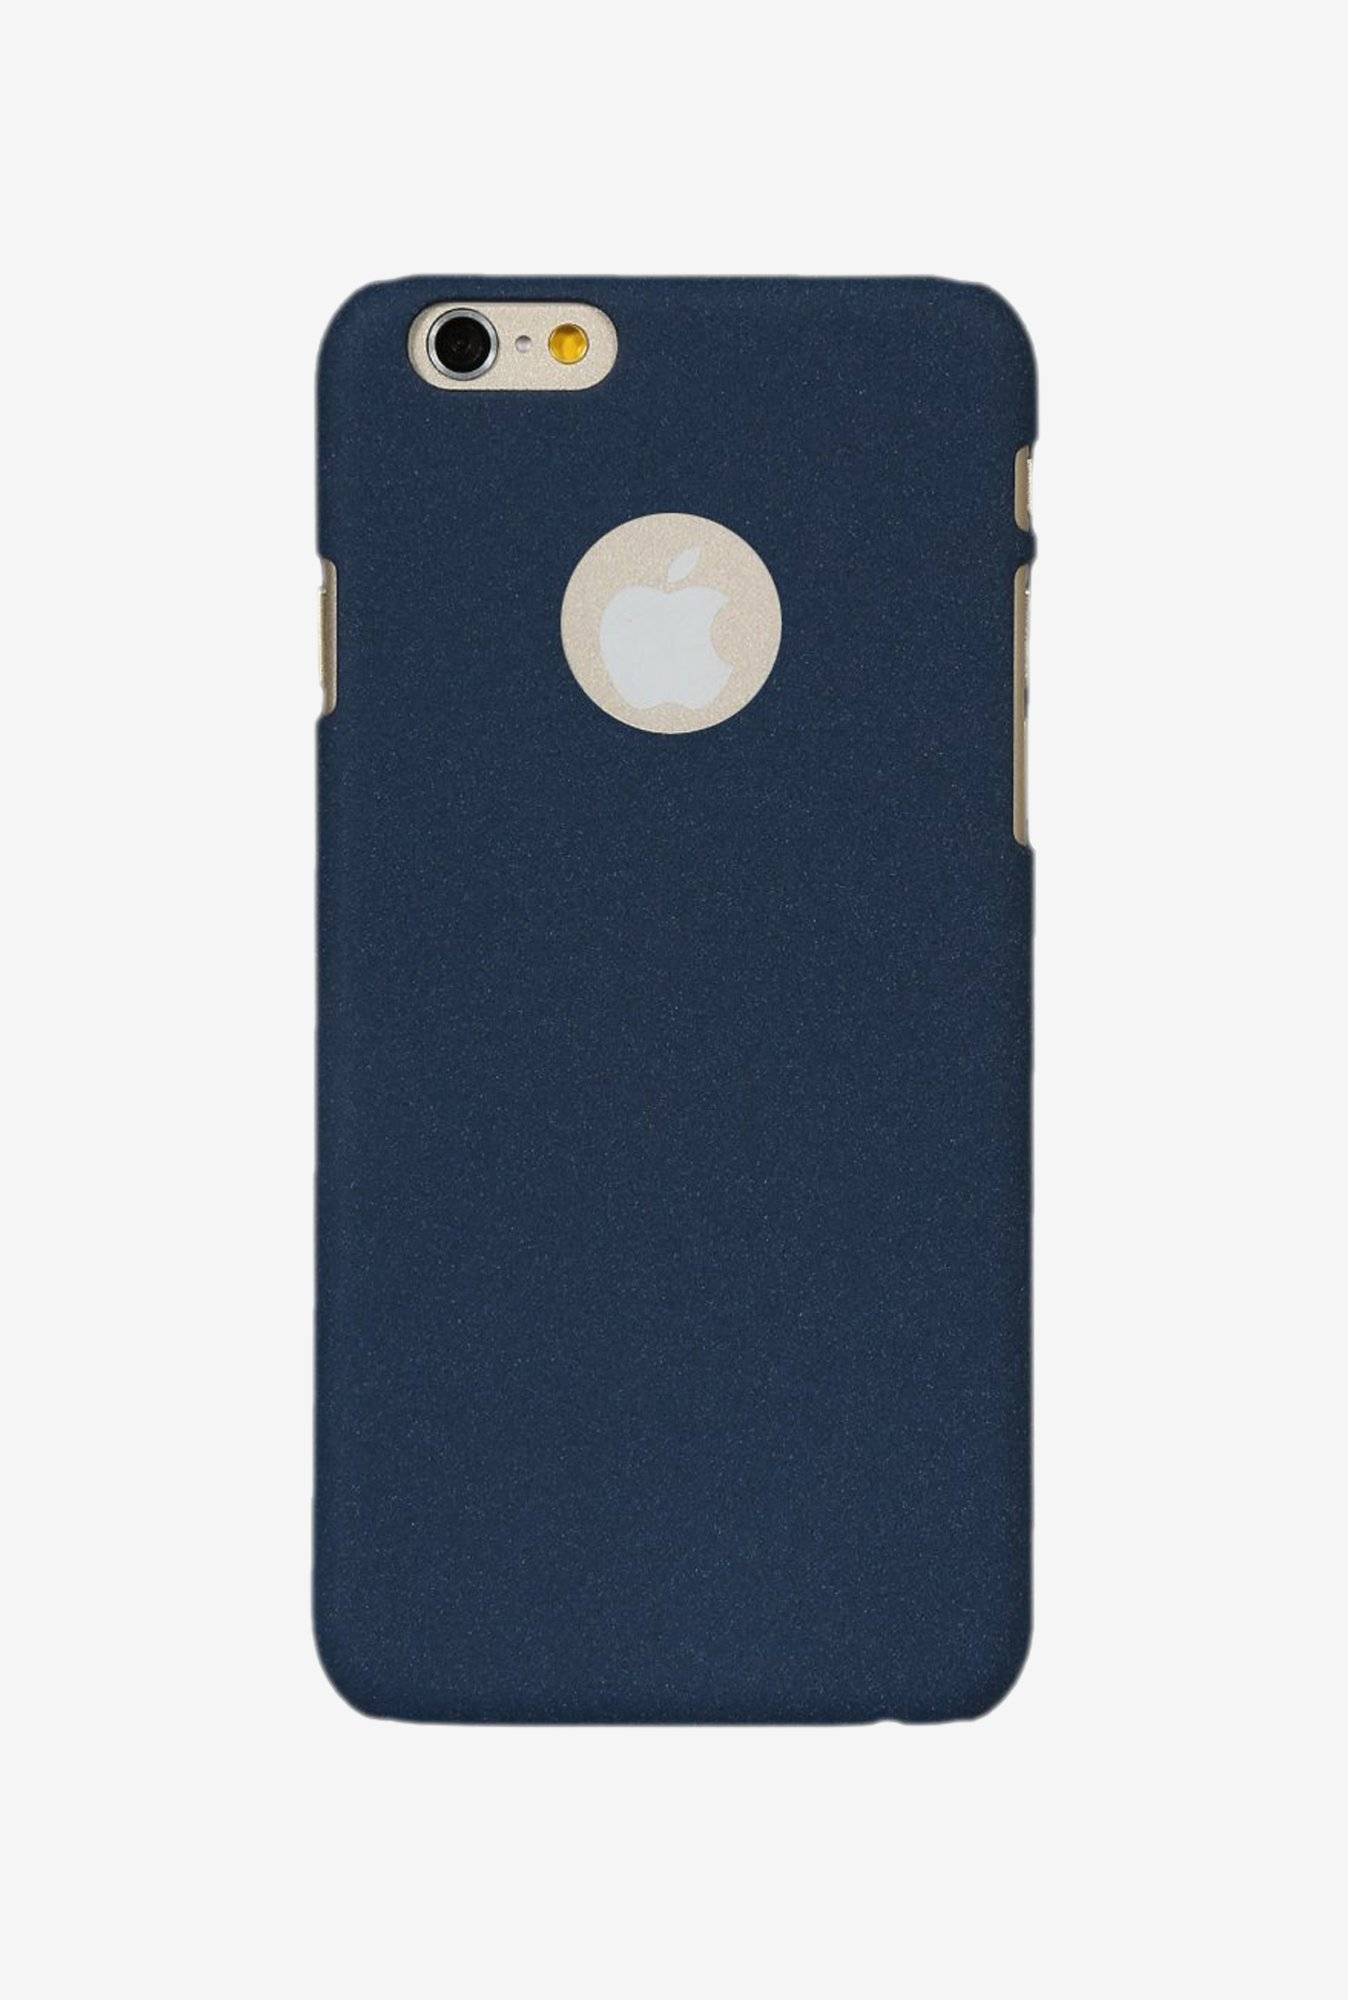 iAccy IP6P017 Cut Out Feel Case Blue for iPhone 6 Plus